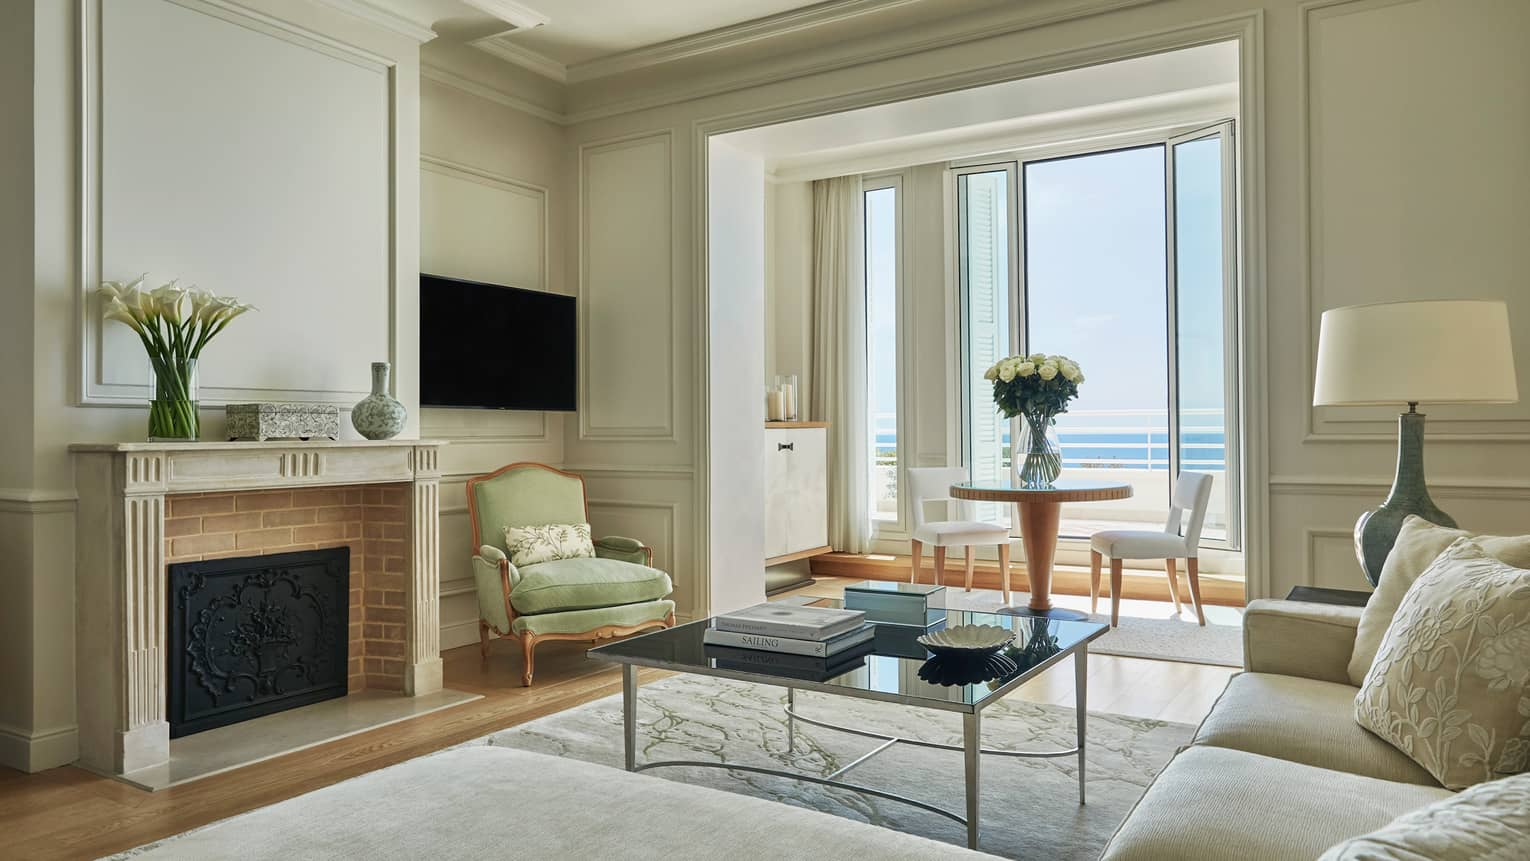 Palace Sea-View Suite, sofa, armchair under high ceilings, fireplace, window alcove with dining table